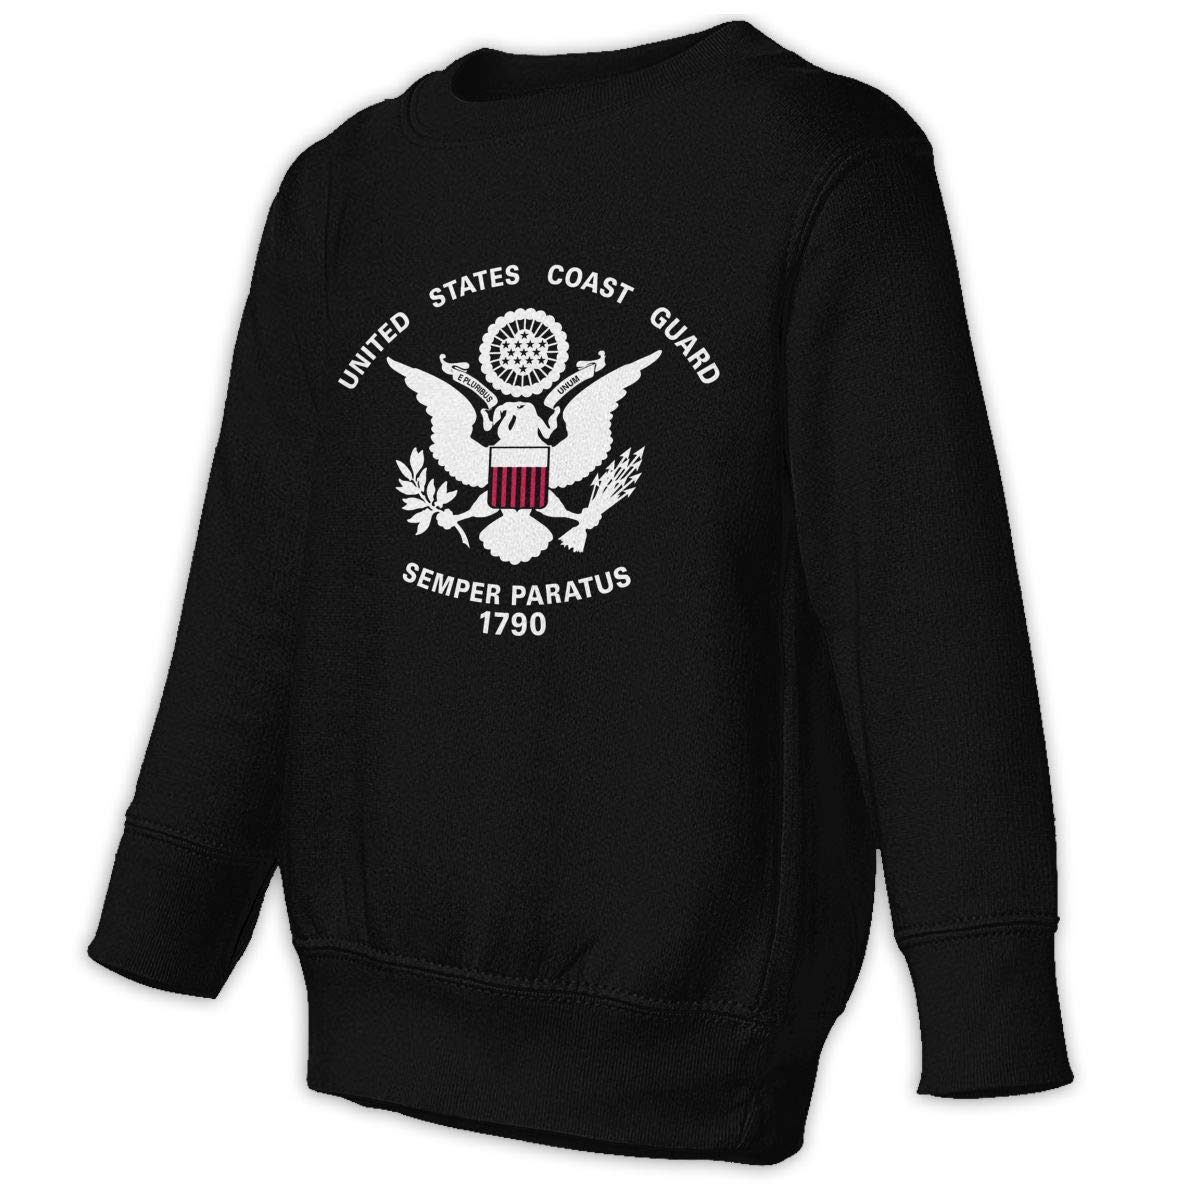 United States Coast Guard 1790 Toddler Unisex Cotton Long Sleeve Round Neck Pullover